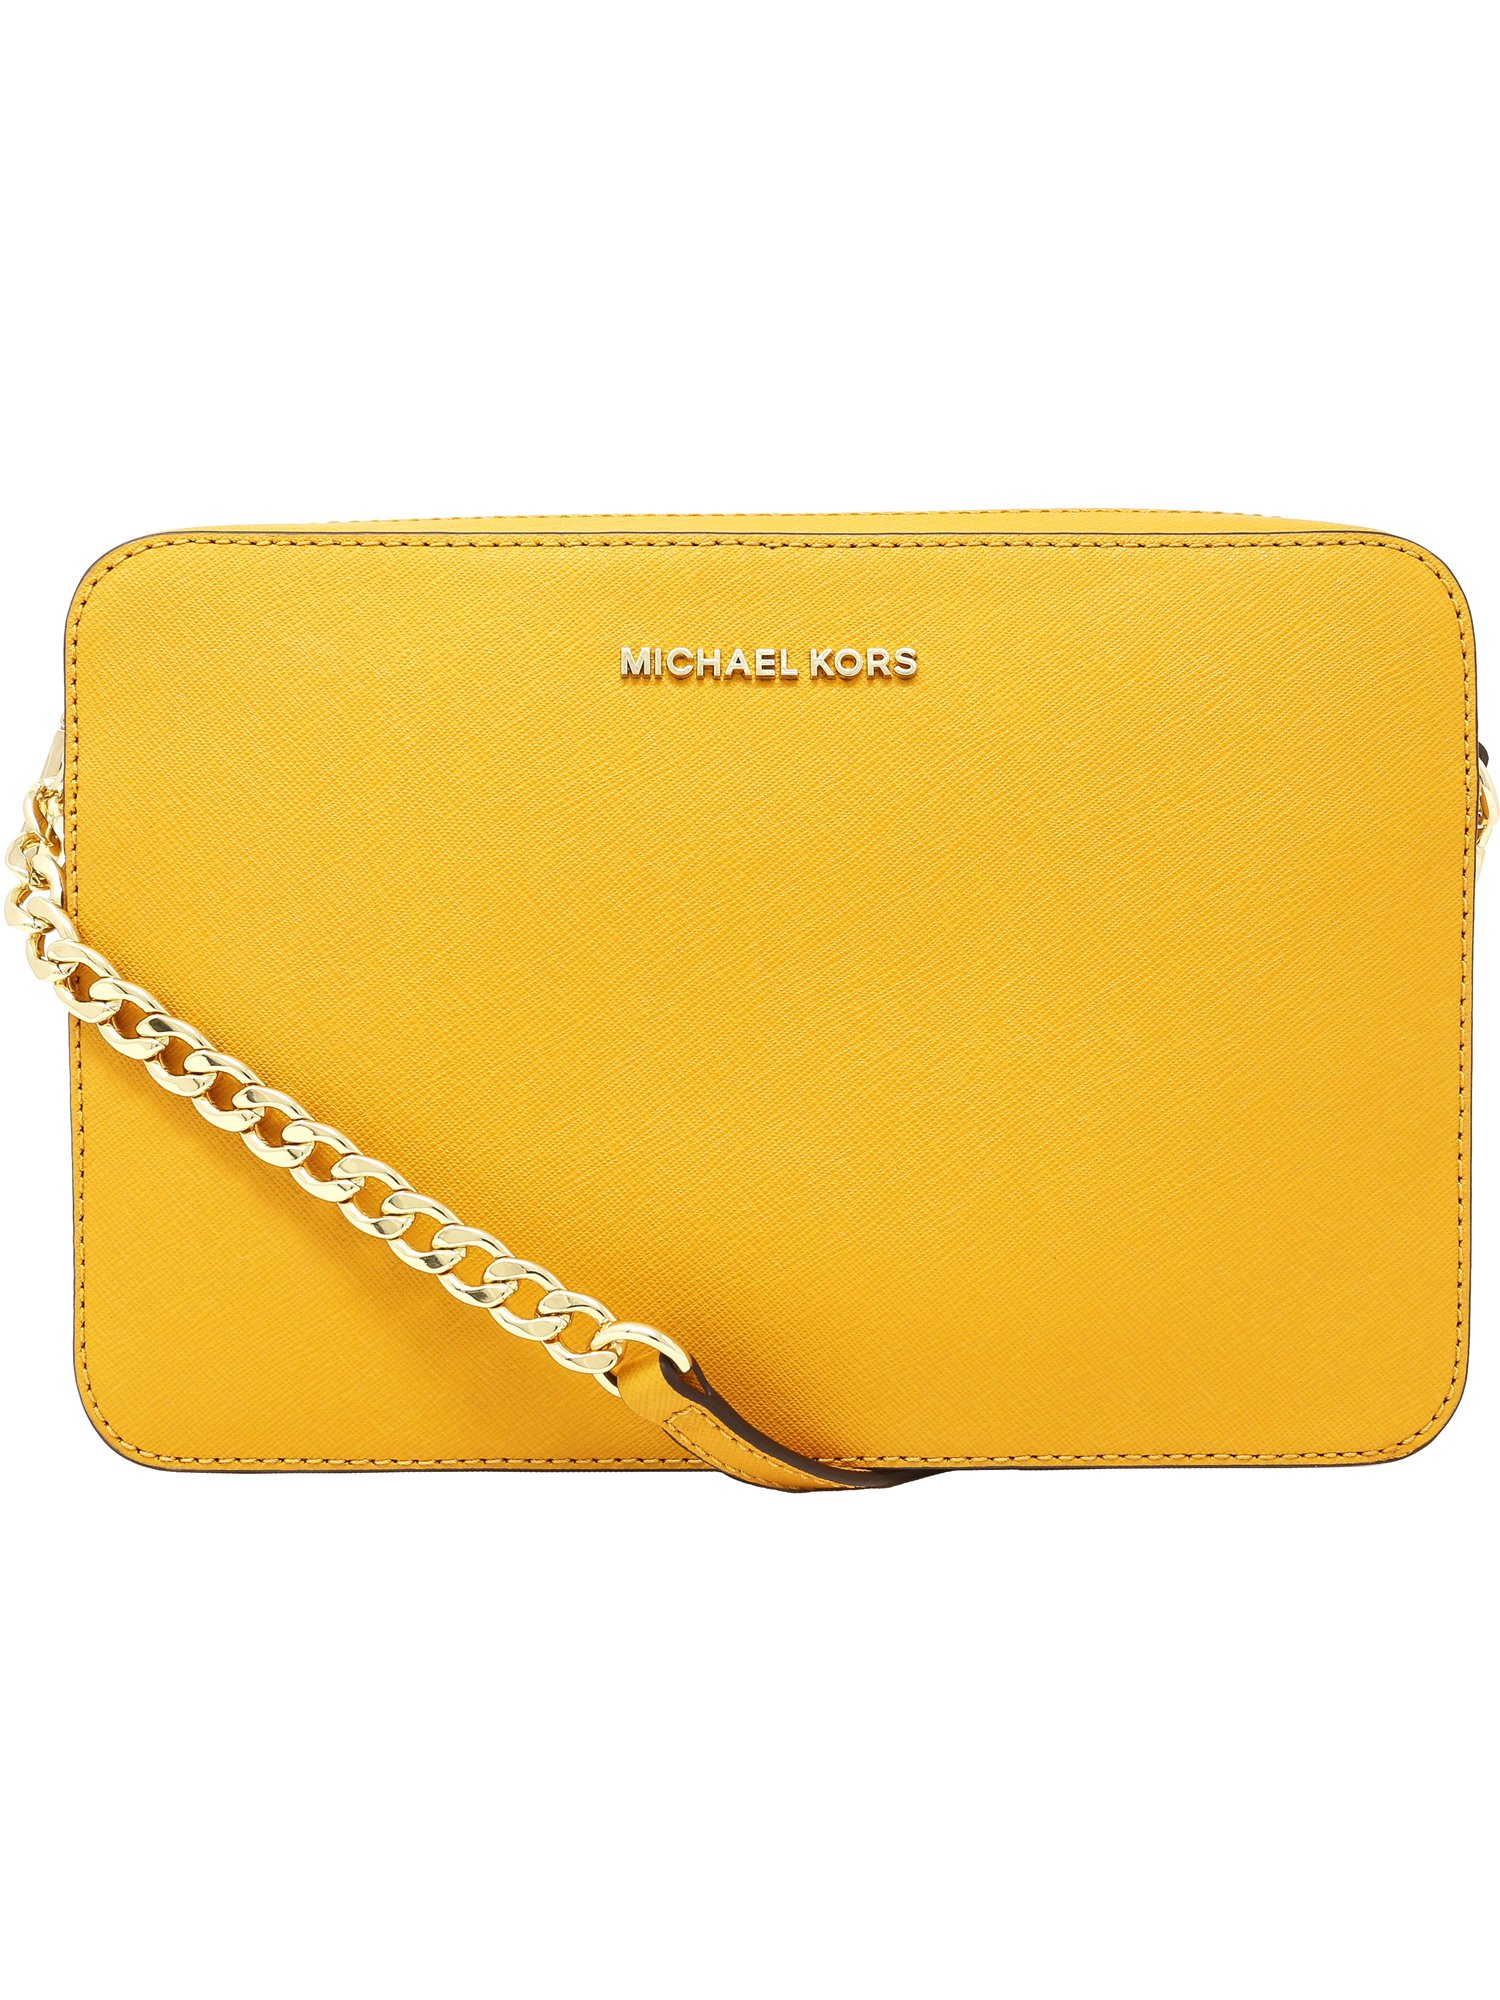 Michael Kors Large Jet Set Saffiano Leather Crossbody Satchel - Marigold